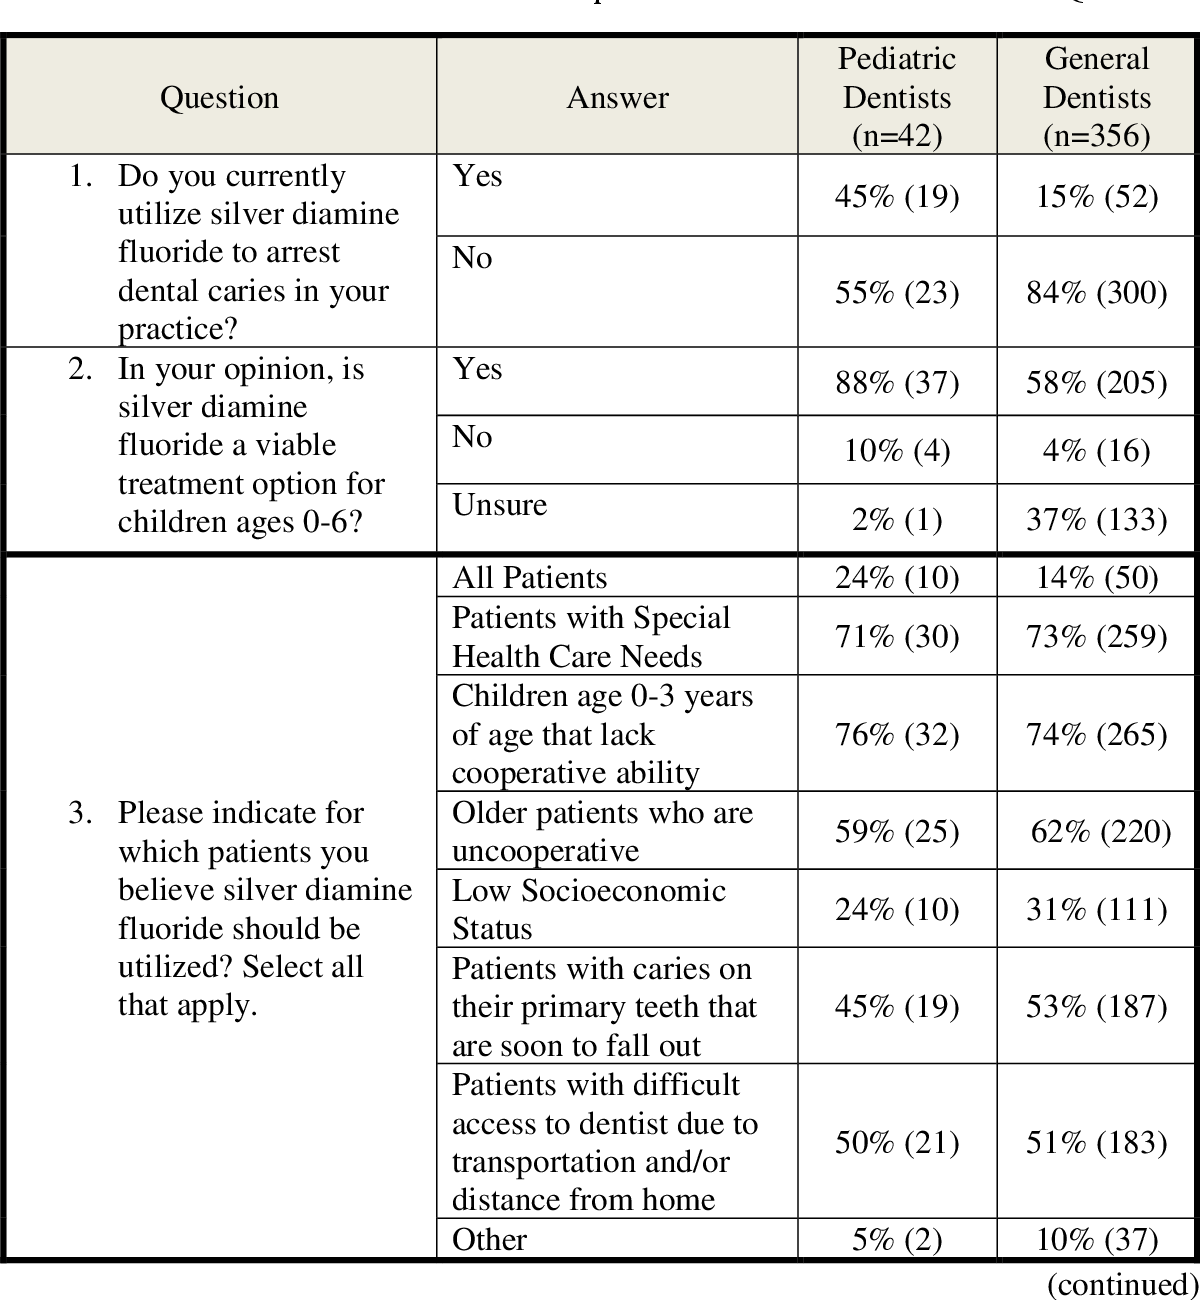 Opinions and Current Practices of General Dentists, Pediatric